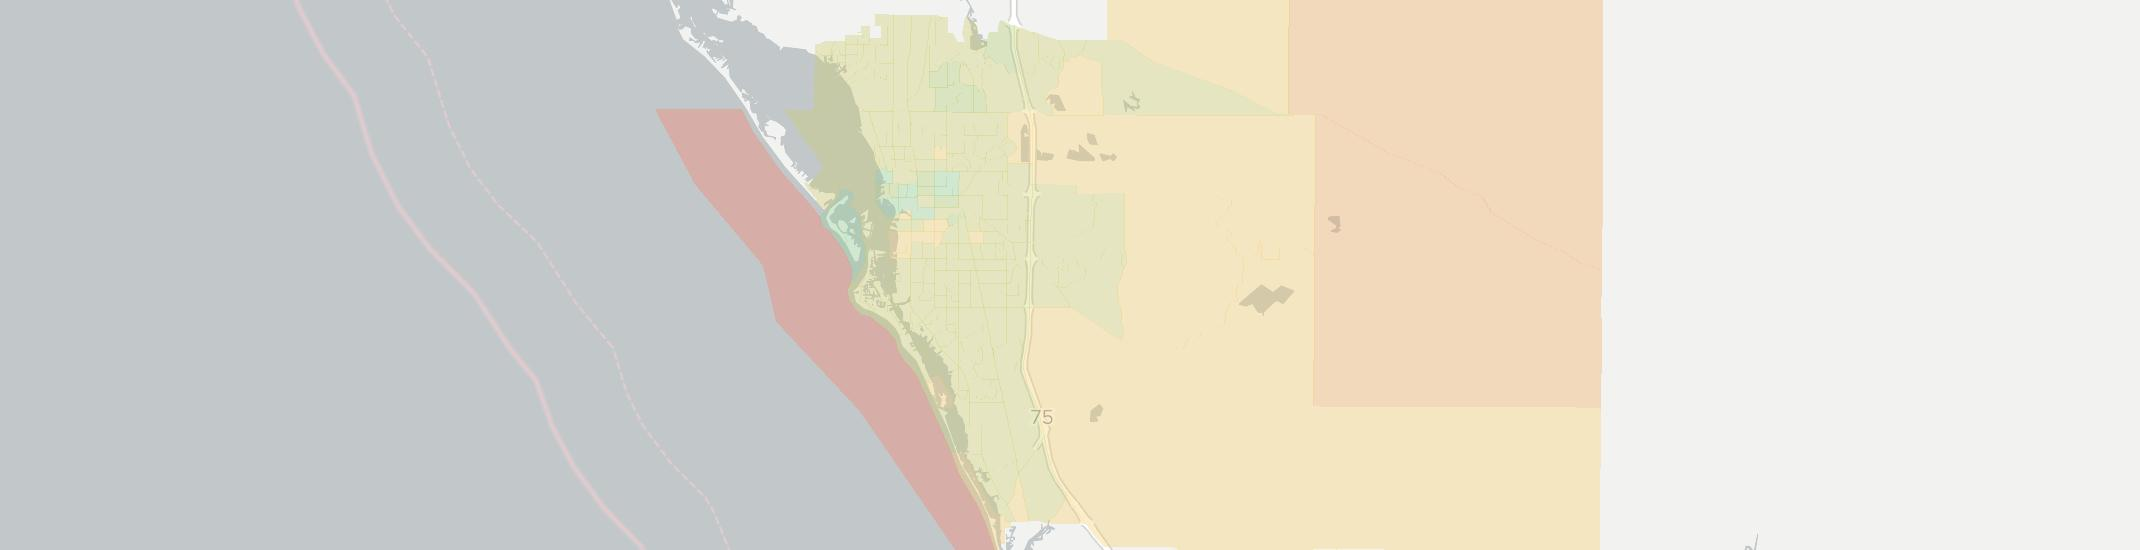 Sarasota Internet Competition Map. Click for interactive map.